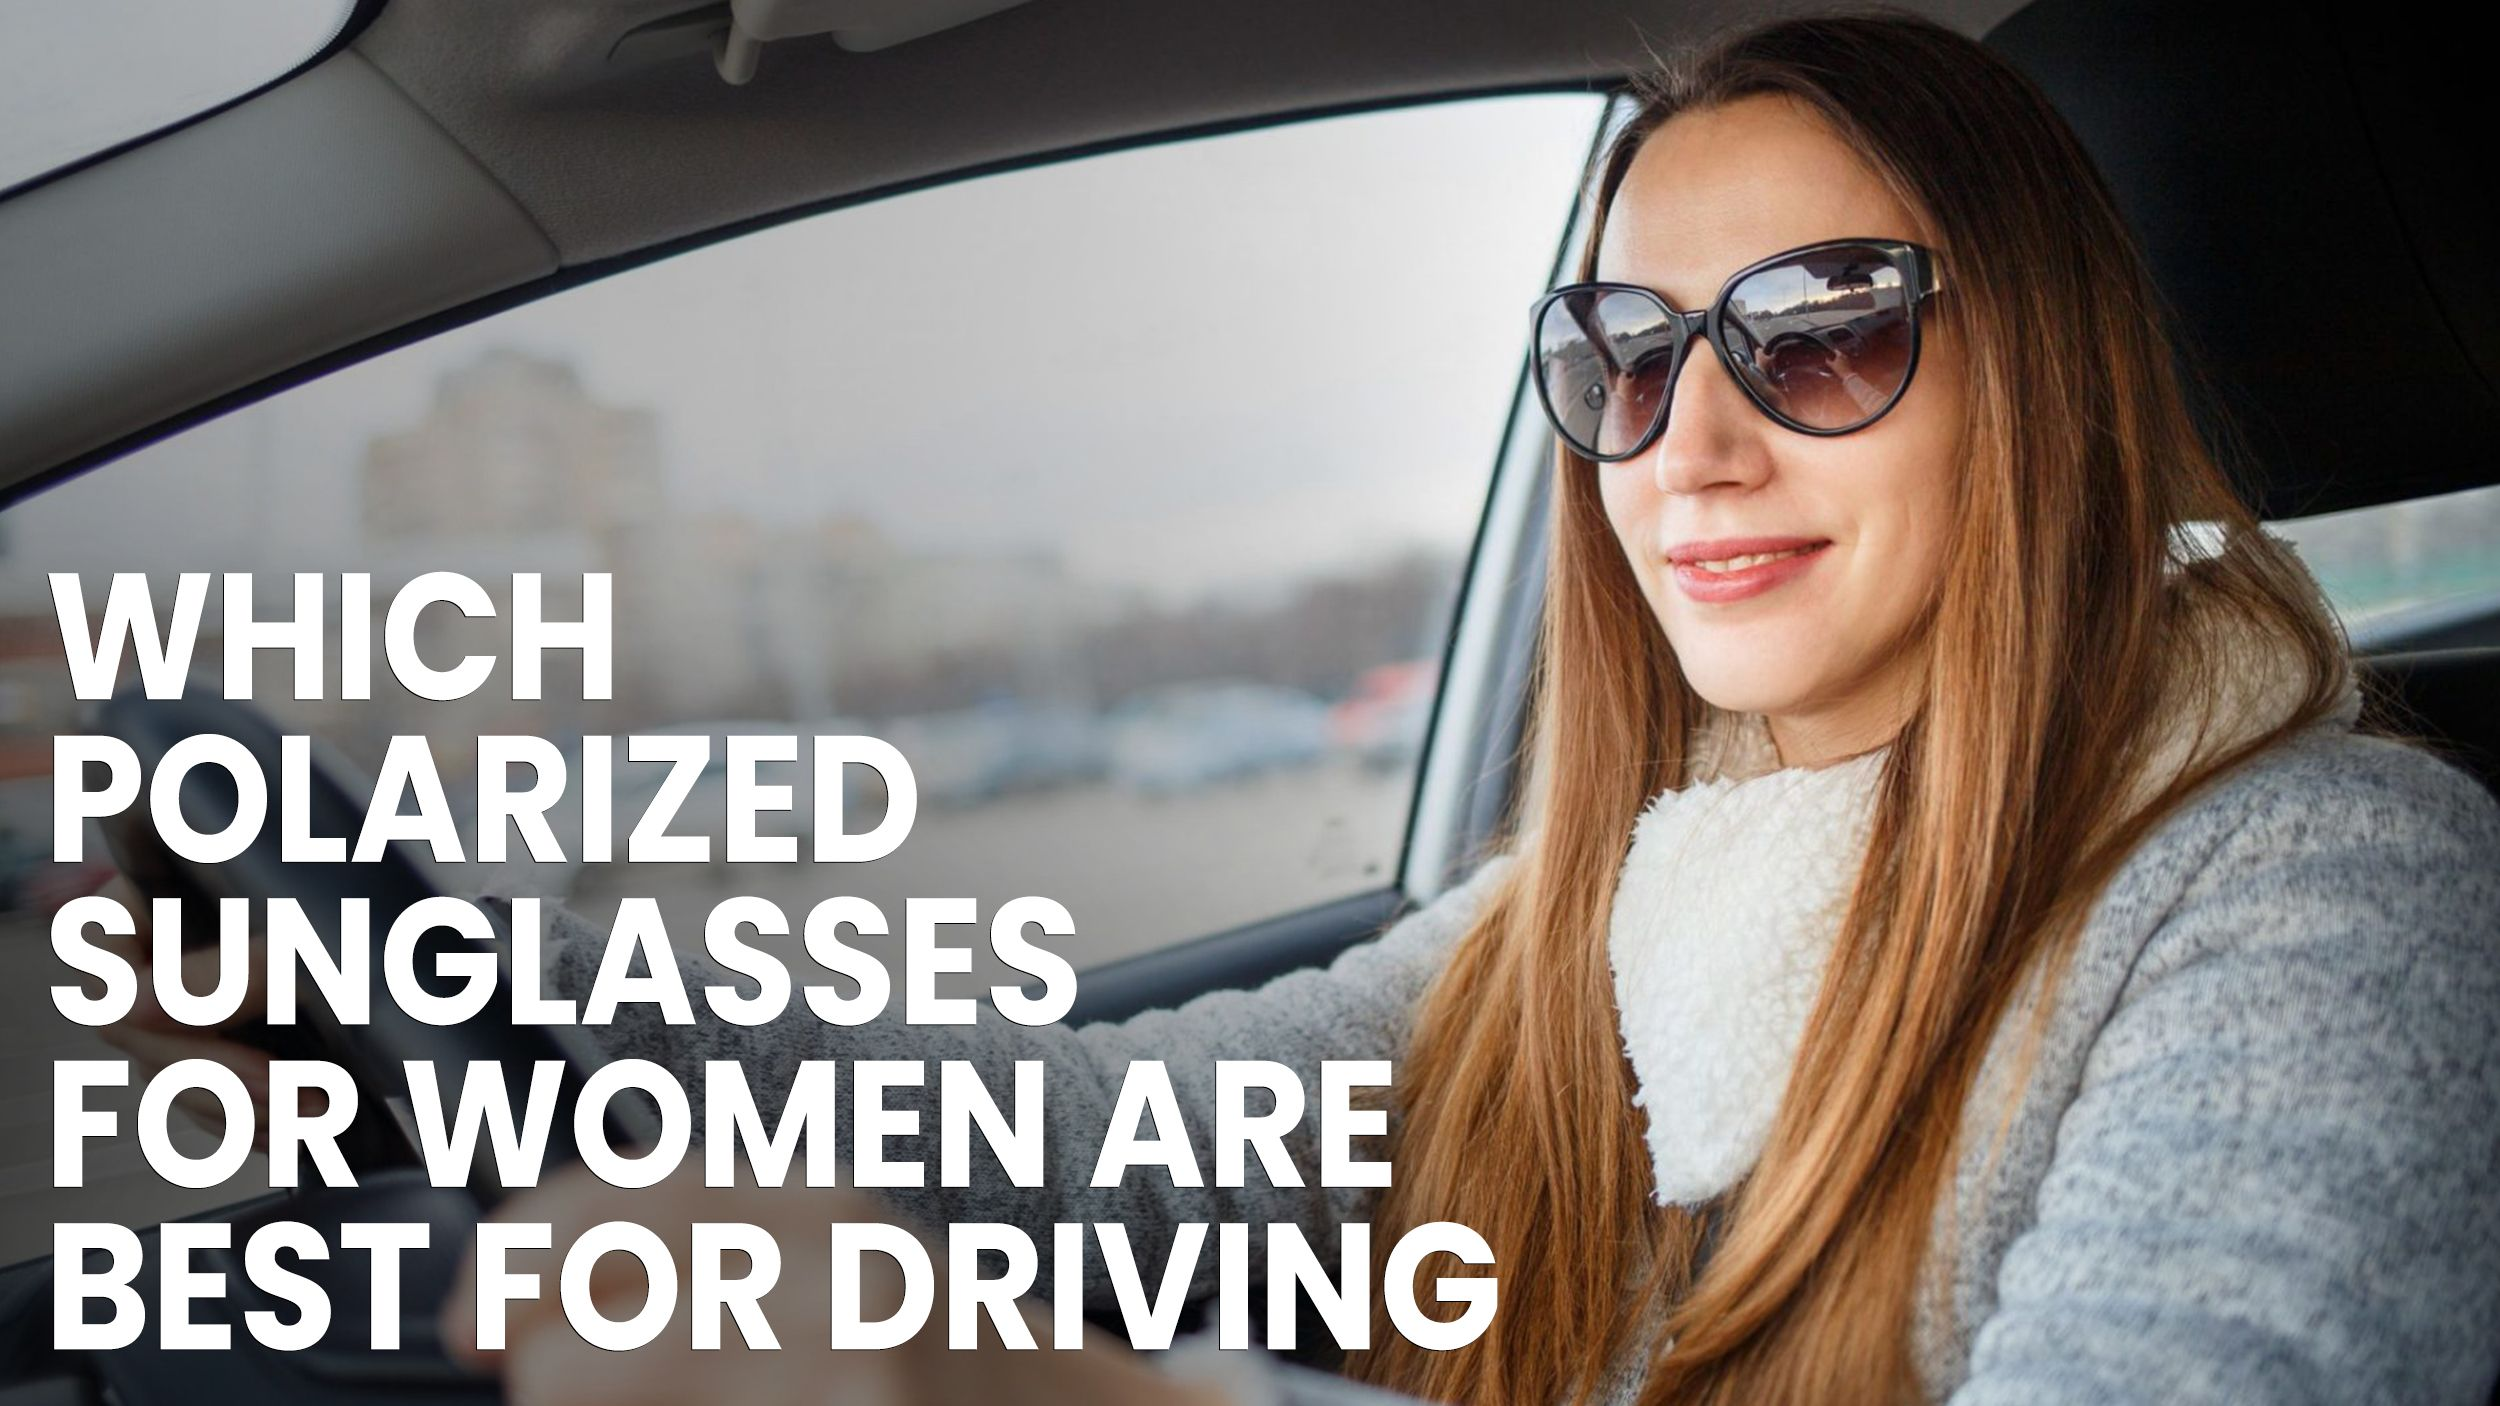 The Best Polarized Sunglasses for Women To Wear While Driving Header